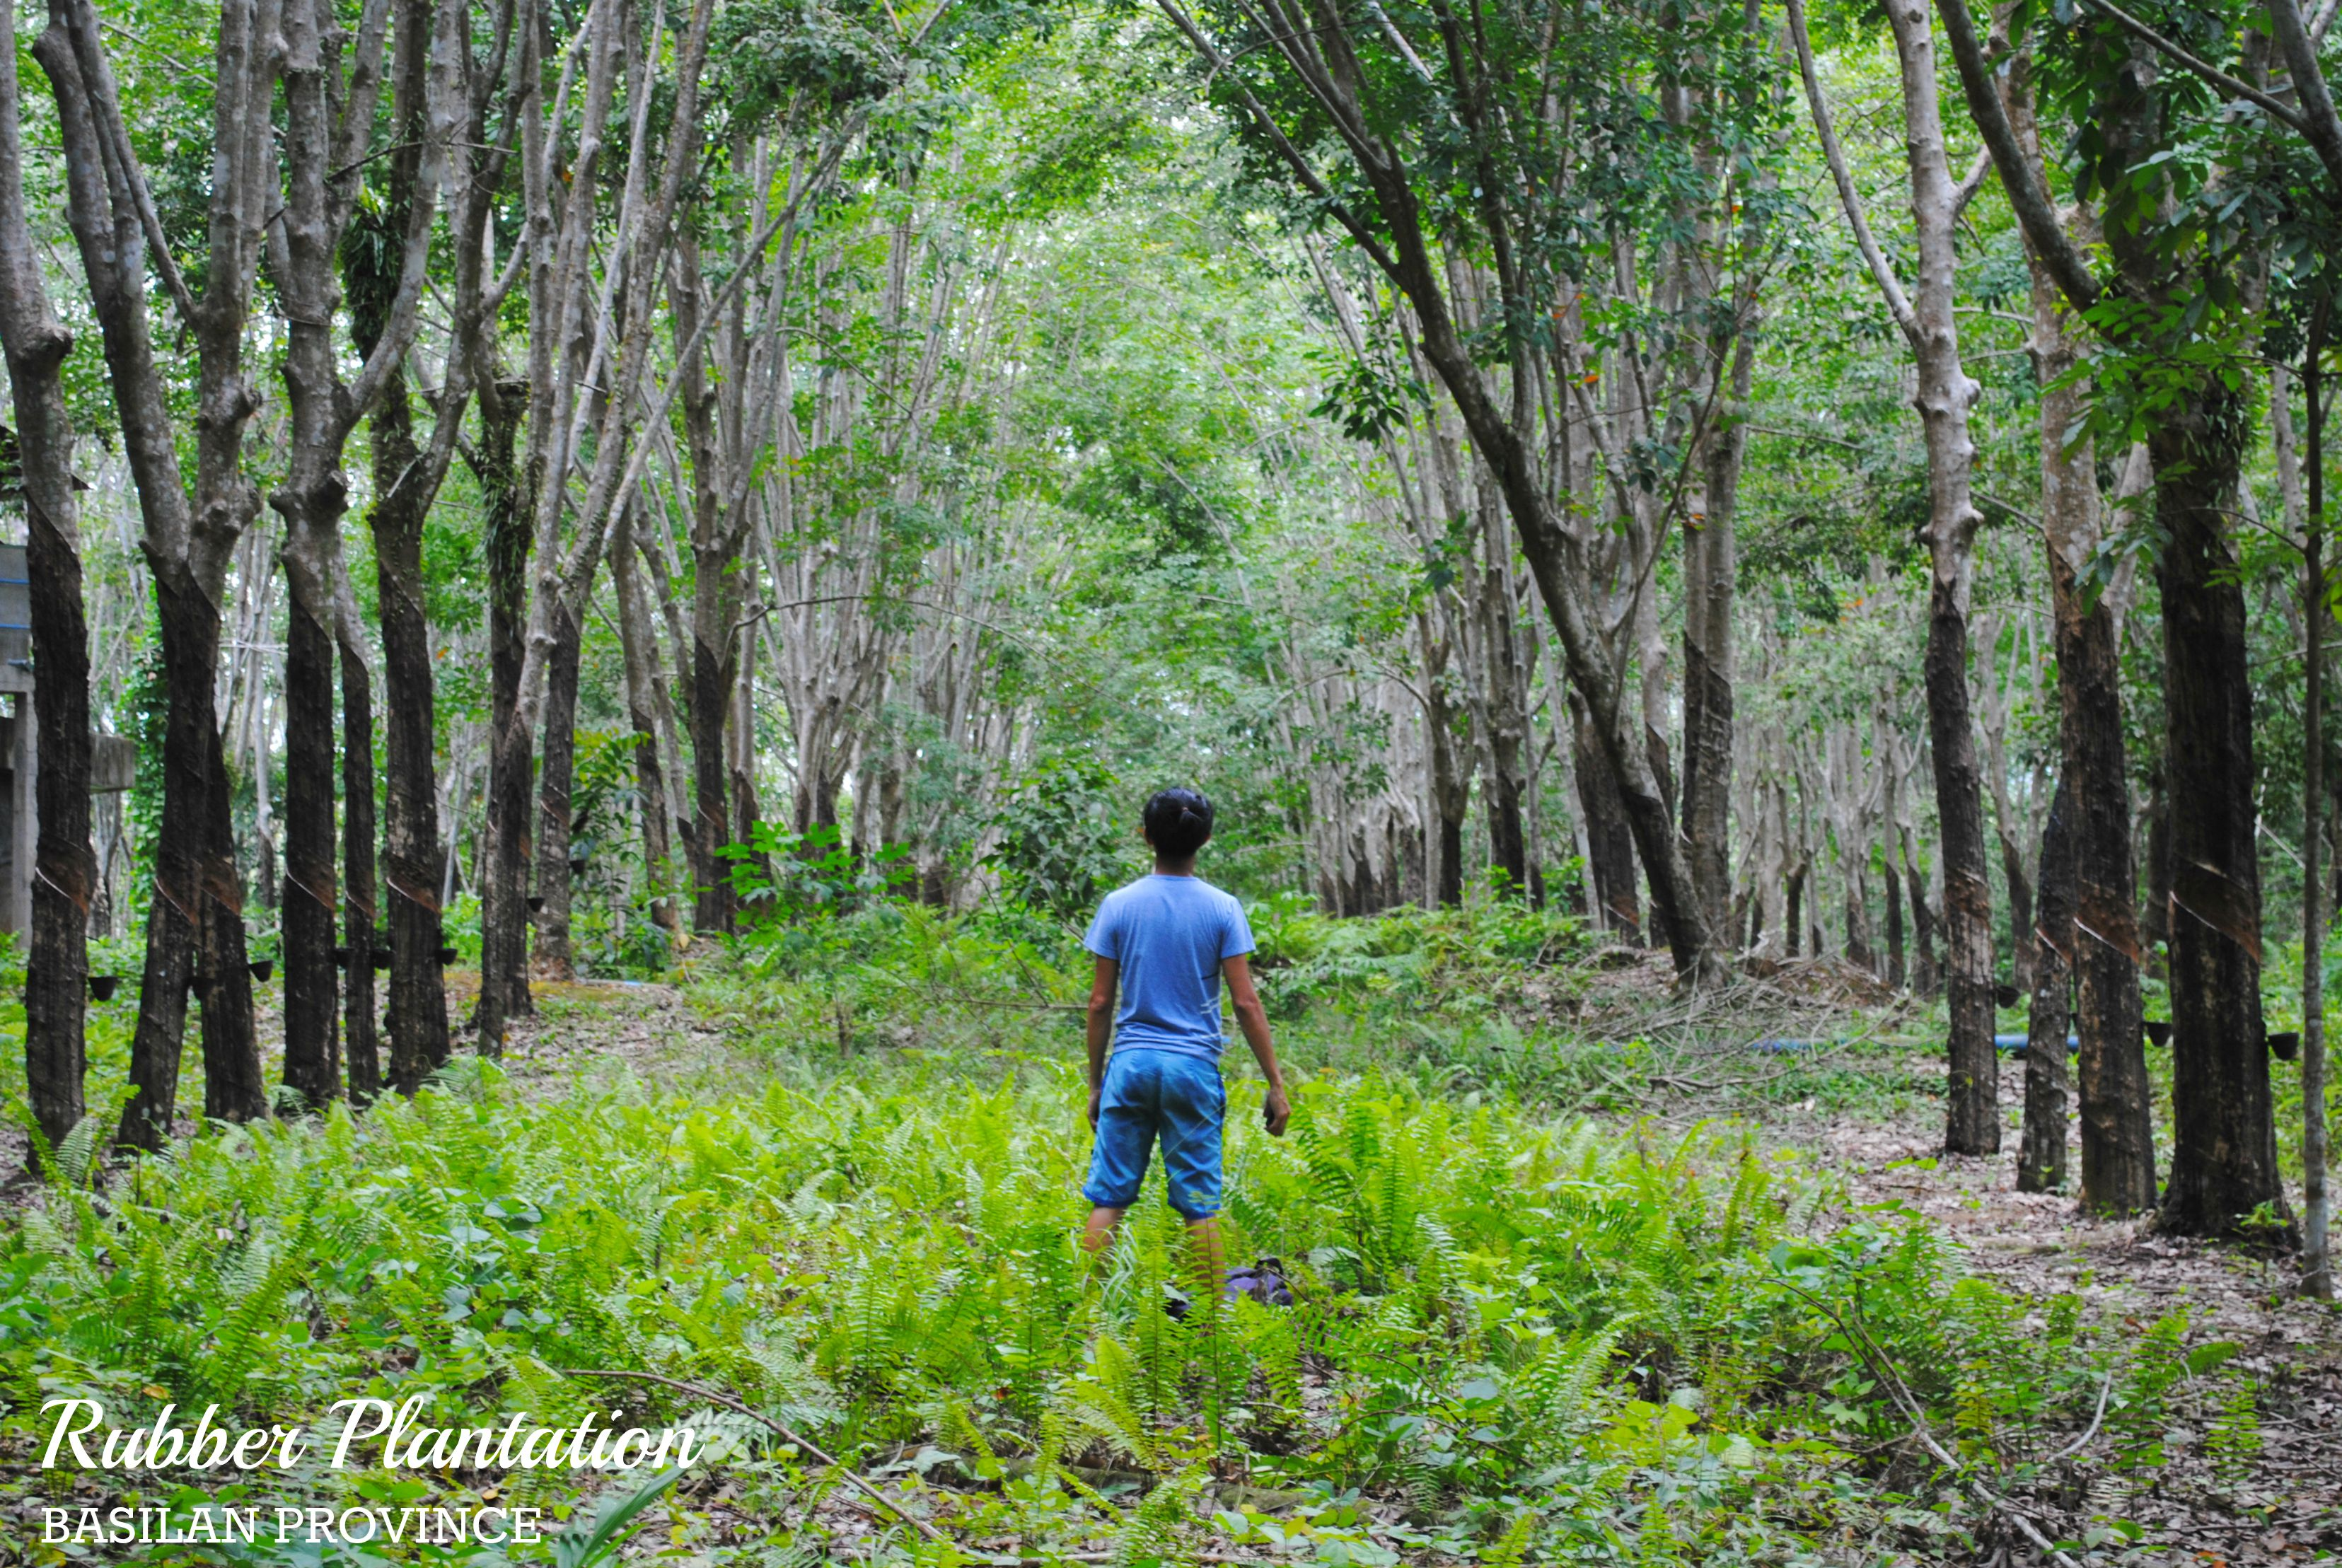 rubber plantations The first decade of the new millennium saw a boom in rubber prices this led to rapid and widespread land conversion to monoculture rubber plantations in continental se asia, where natural rubber production has increased 50% since 2000.